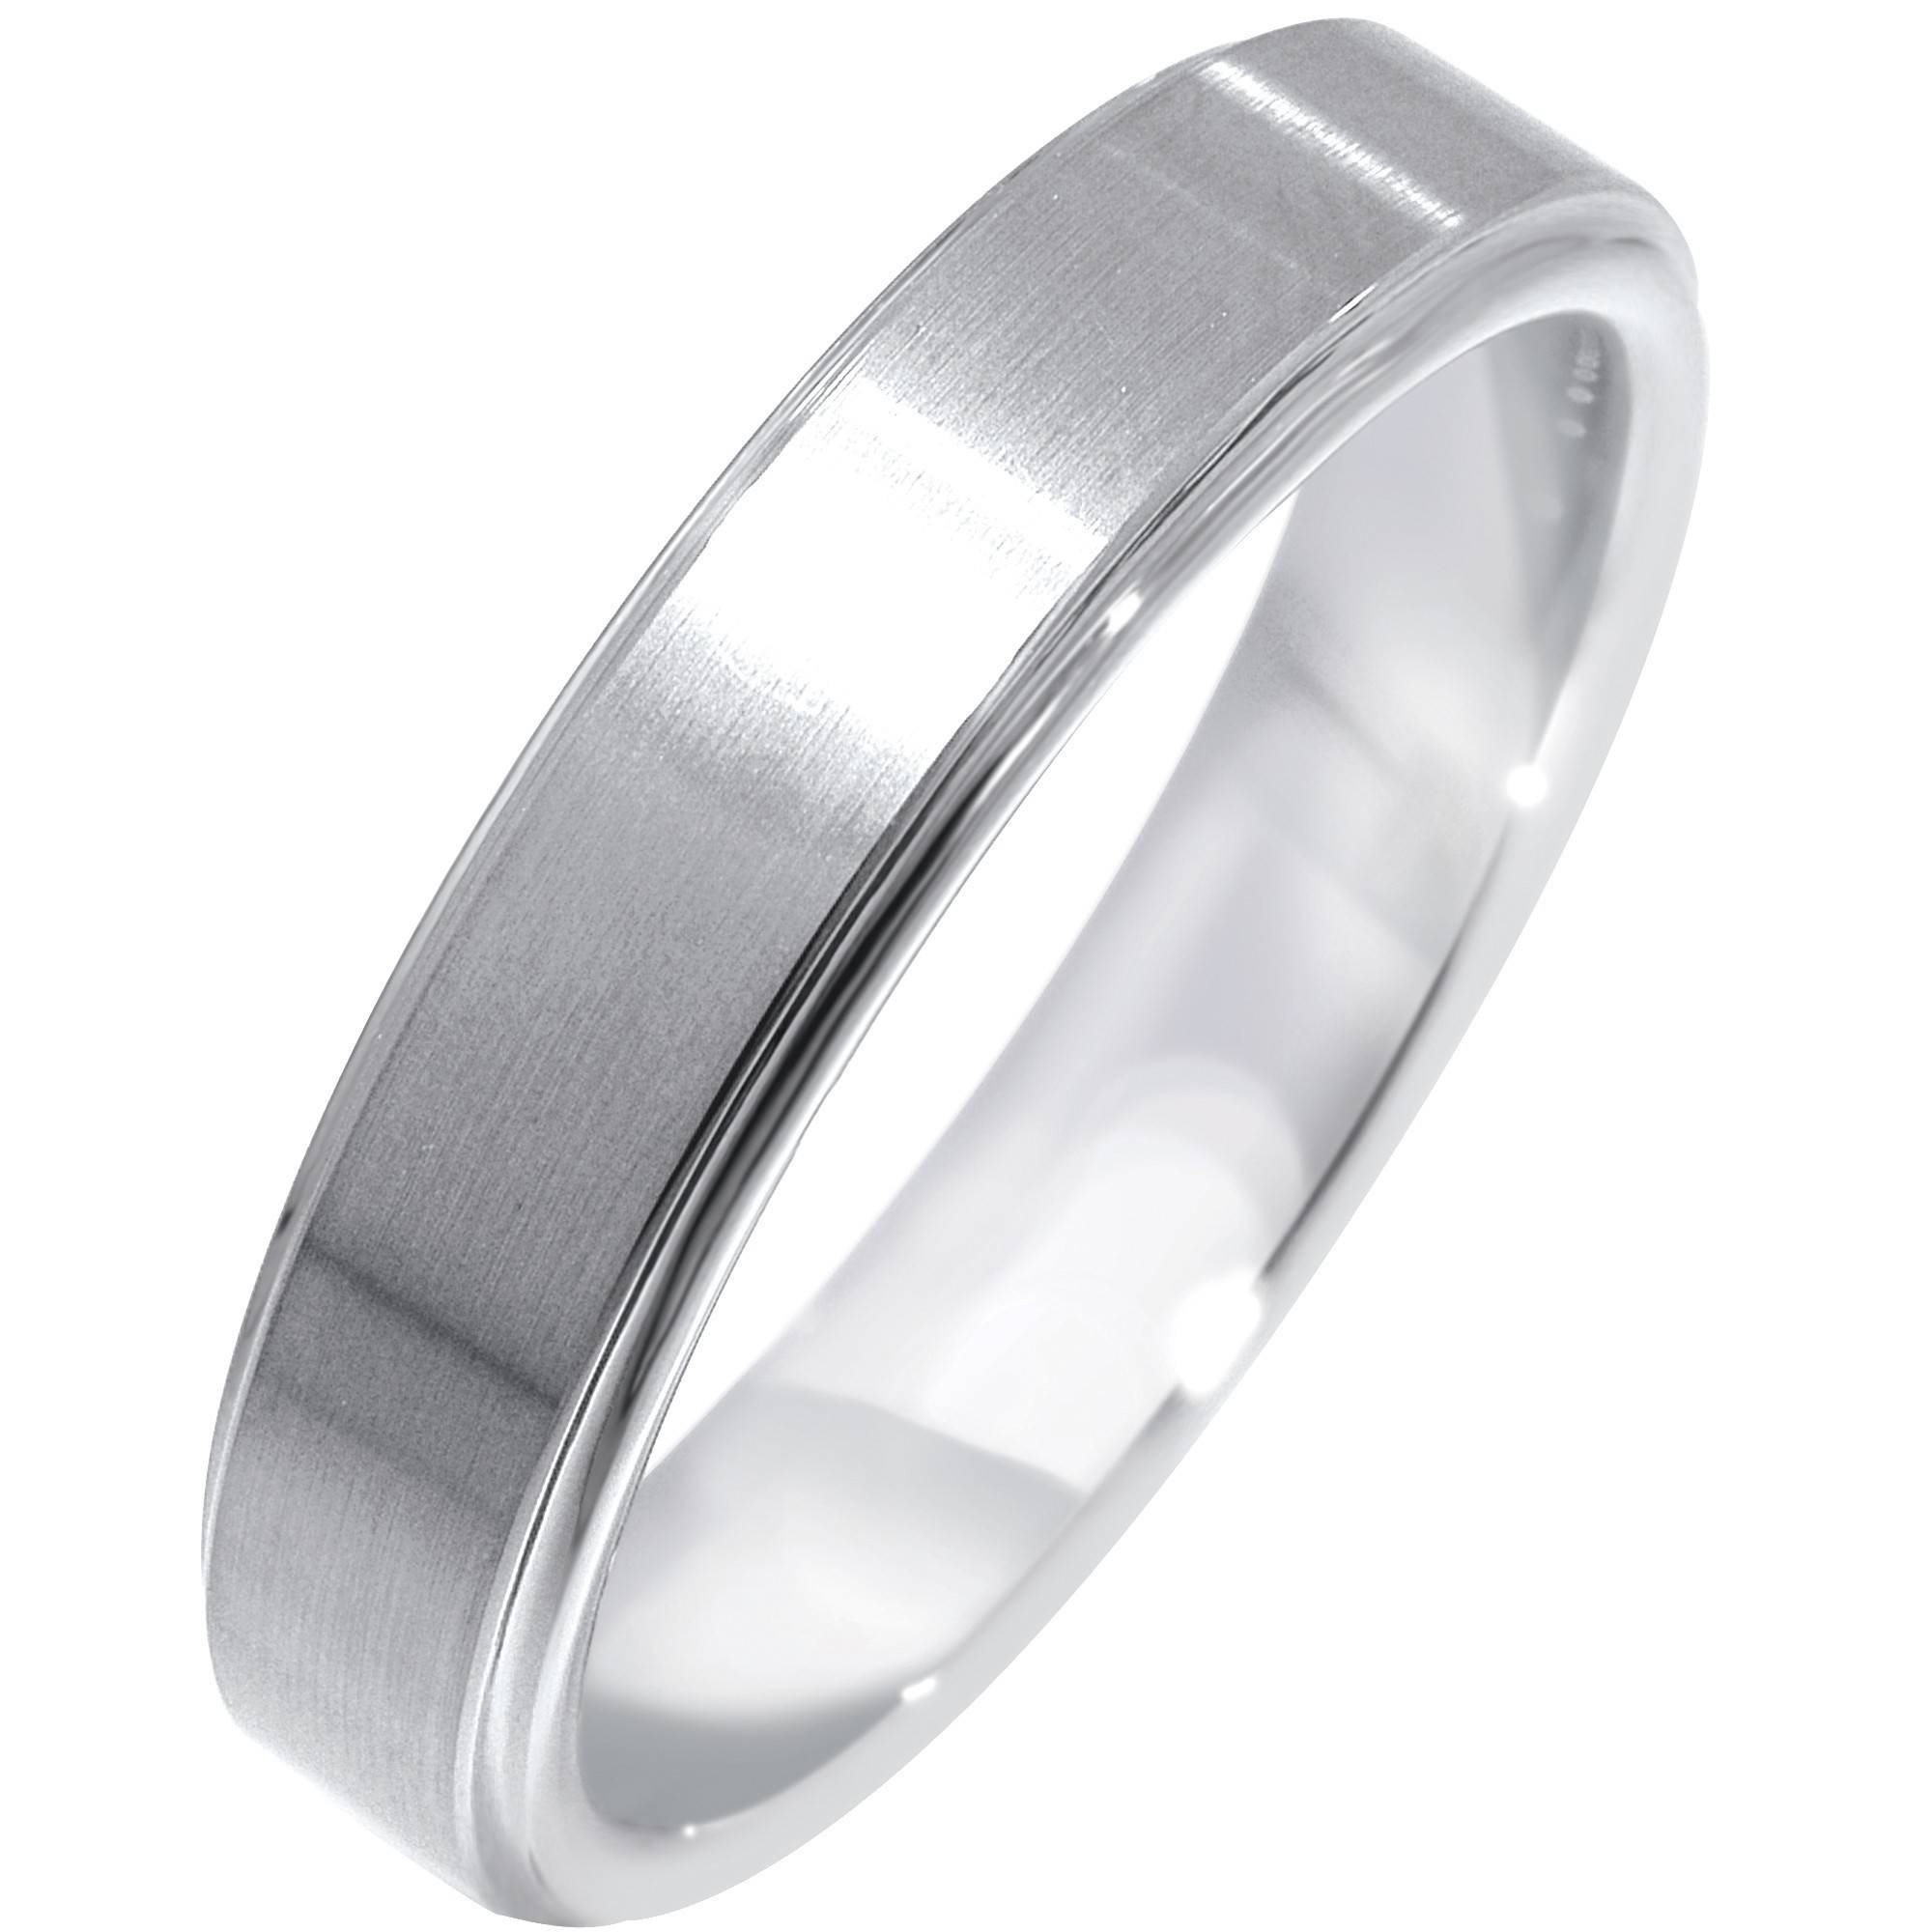 Artcarved Lowell Mens Carved Wedding Band In Tungsten Carbide (5Mm) Regarding Carved Wedding Bands (View 3 of 15)